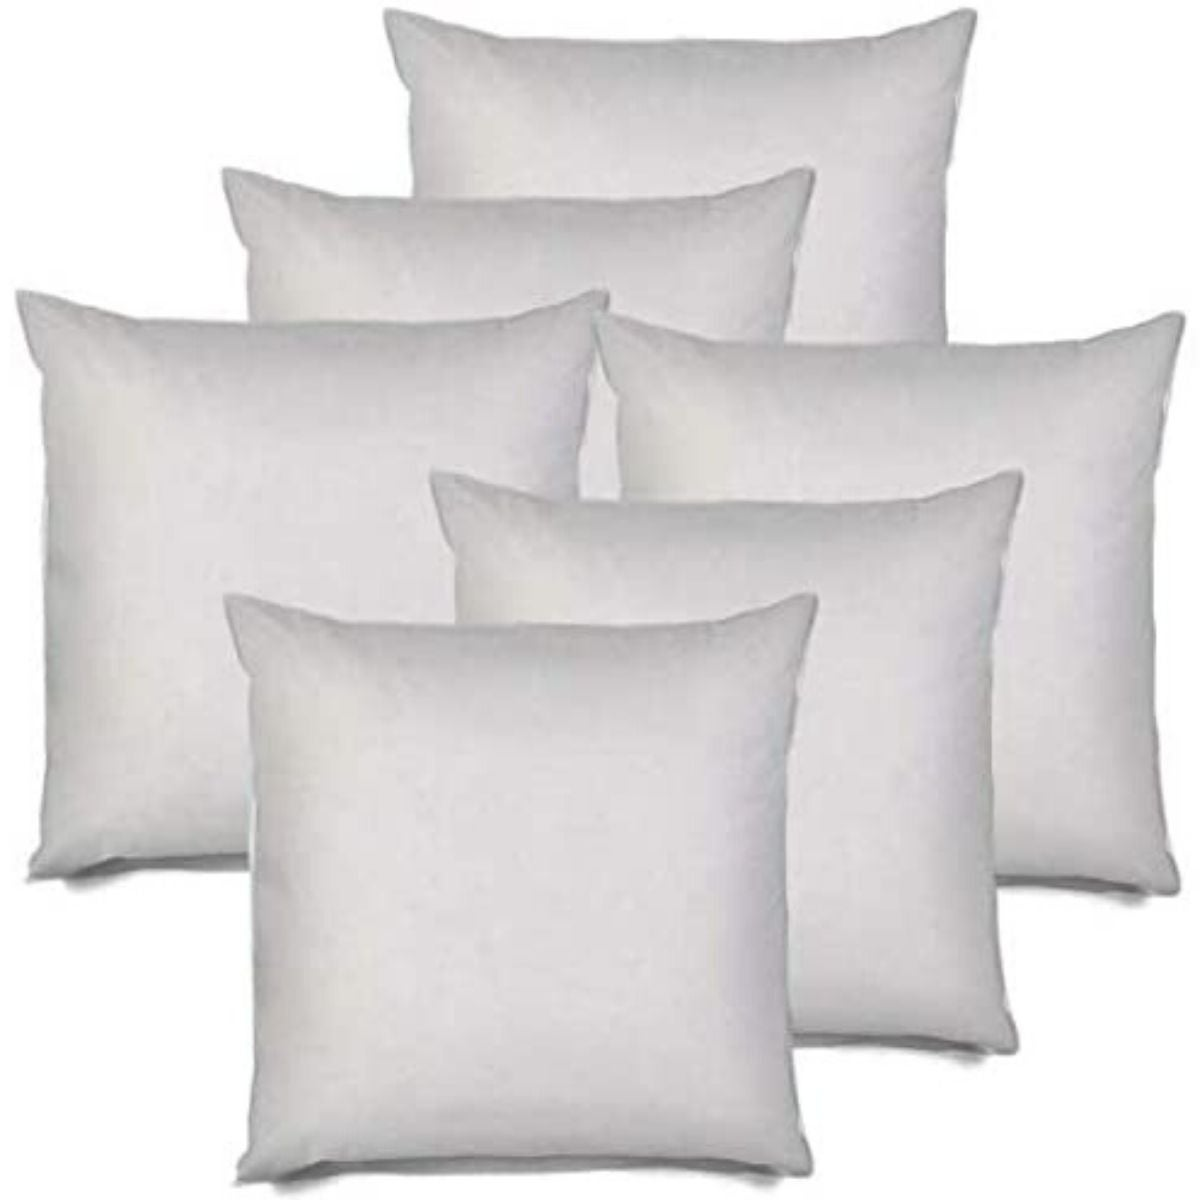 Pure White Homehold 2 Pack 18 x 18 Inch Square Pillow Inserts for Sofa Decorative Throw Pillow Inserts with 100/% Cotton Cover